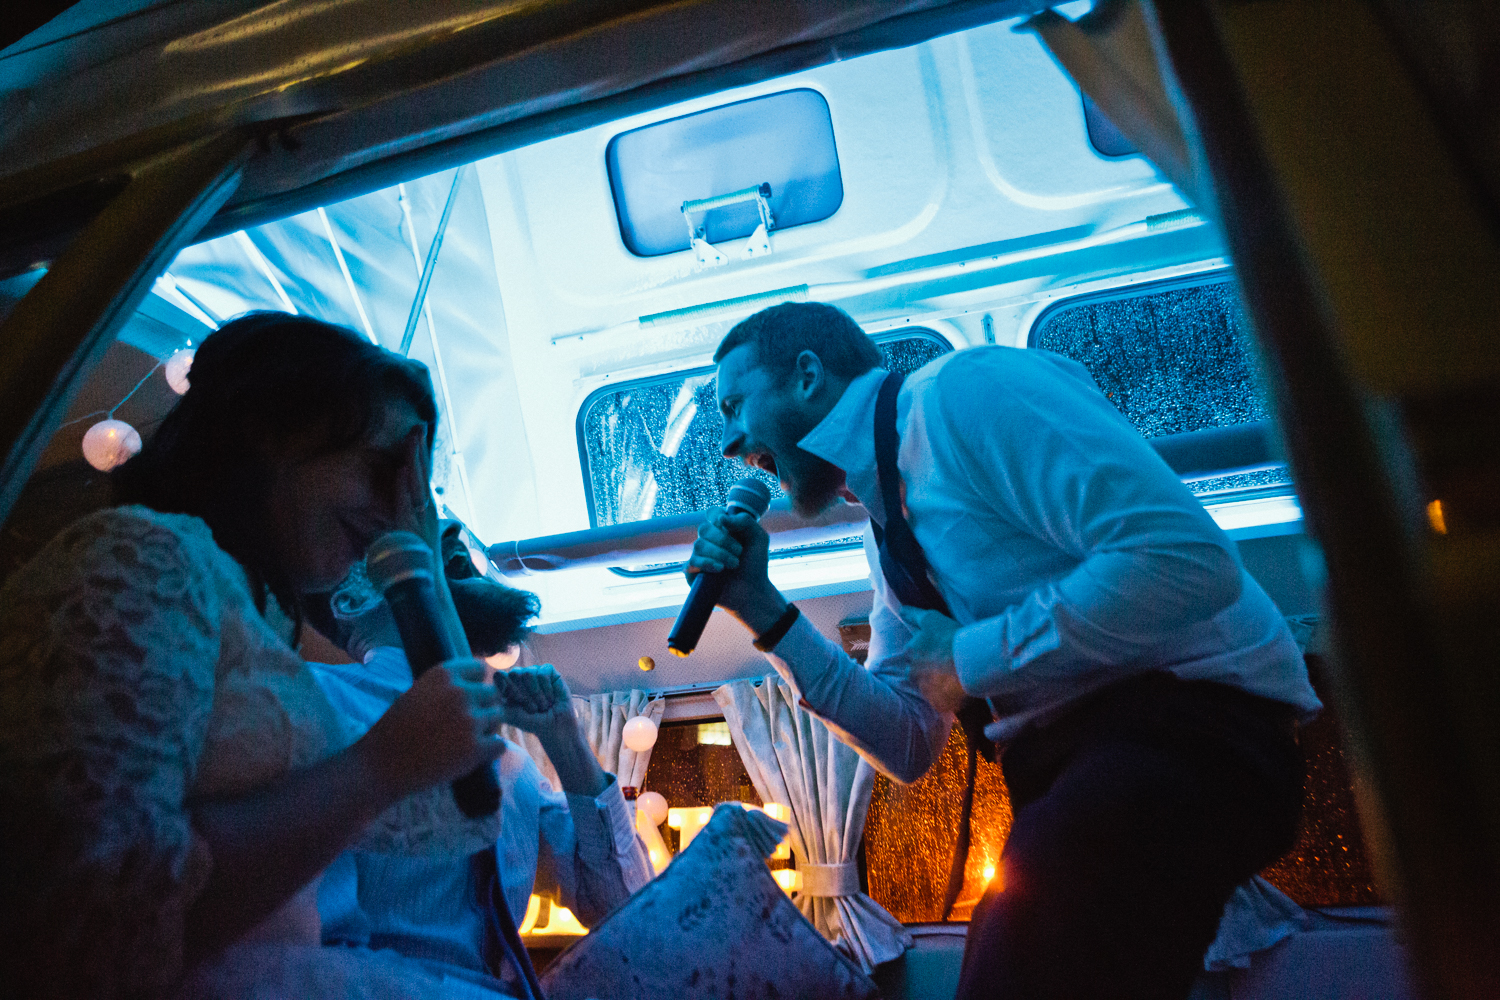 Wedding guests singing in a karaoke vw camper van called Mc Trigg outside of a winter wedding reception at the County Hall in Kingston Upon Thames, London